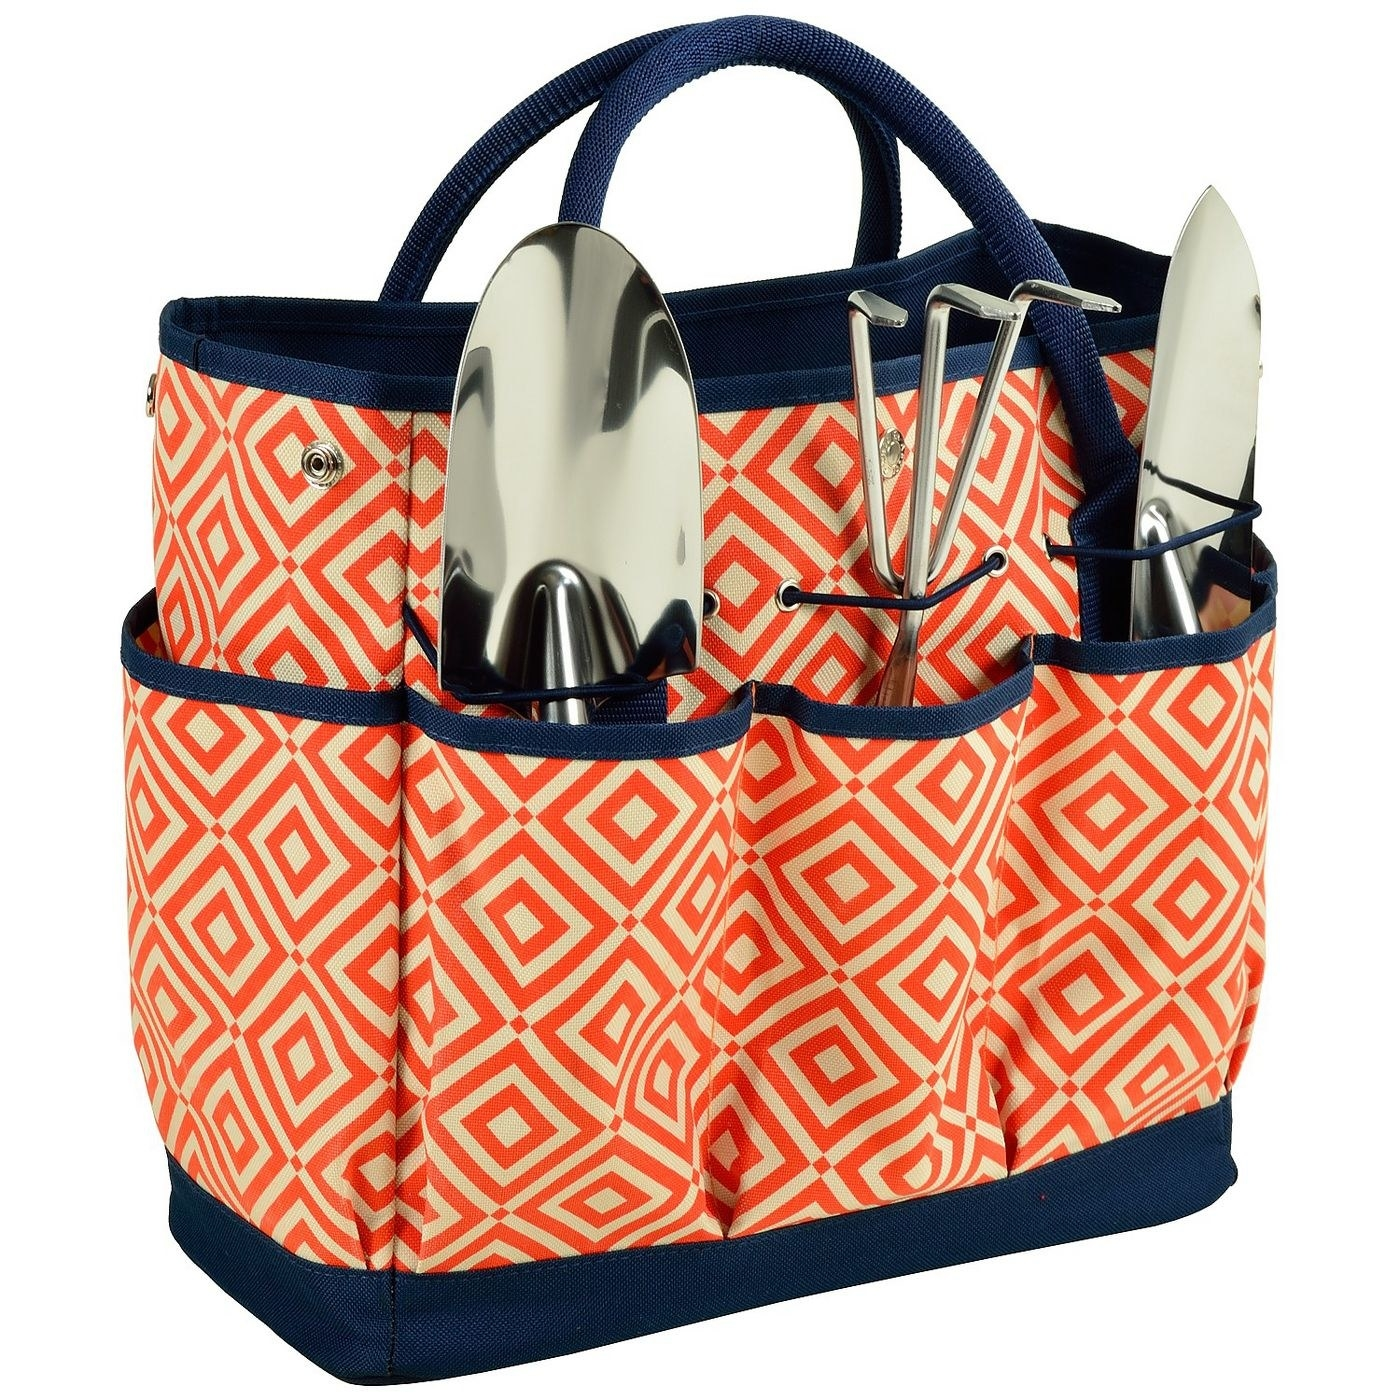 The tote, which has a large central pocket and three smaller outer pockets on either side